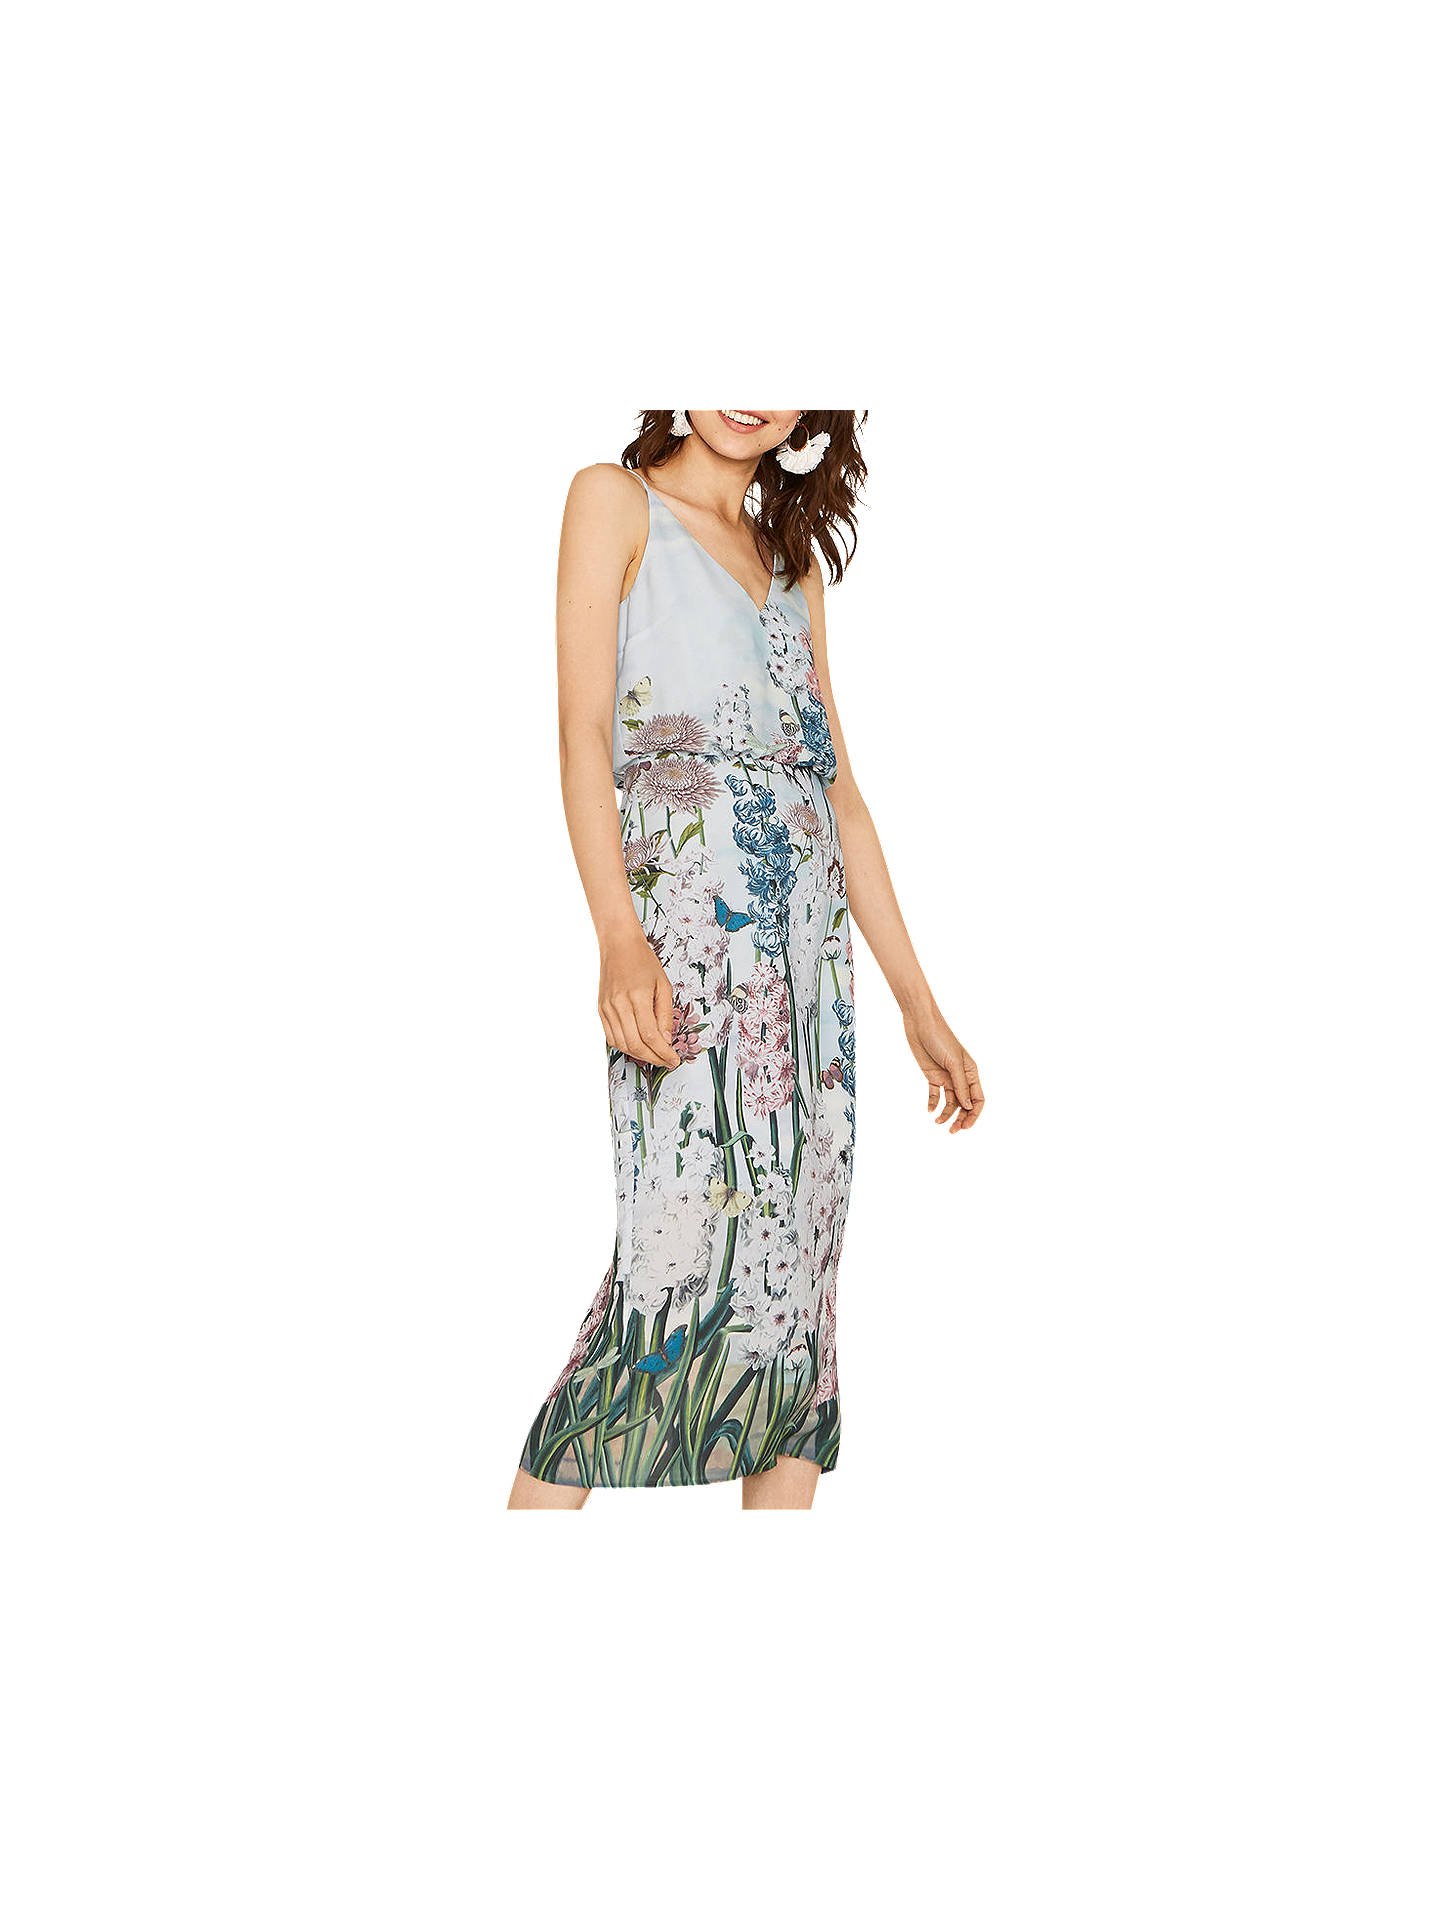 Oasis Natural History Museum Column Midi Dress, Multi at John Lewis